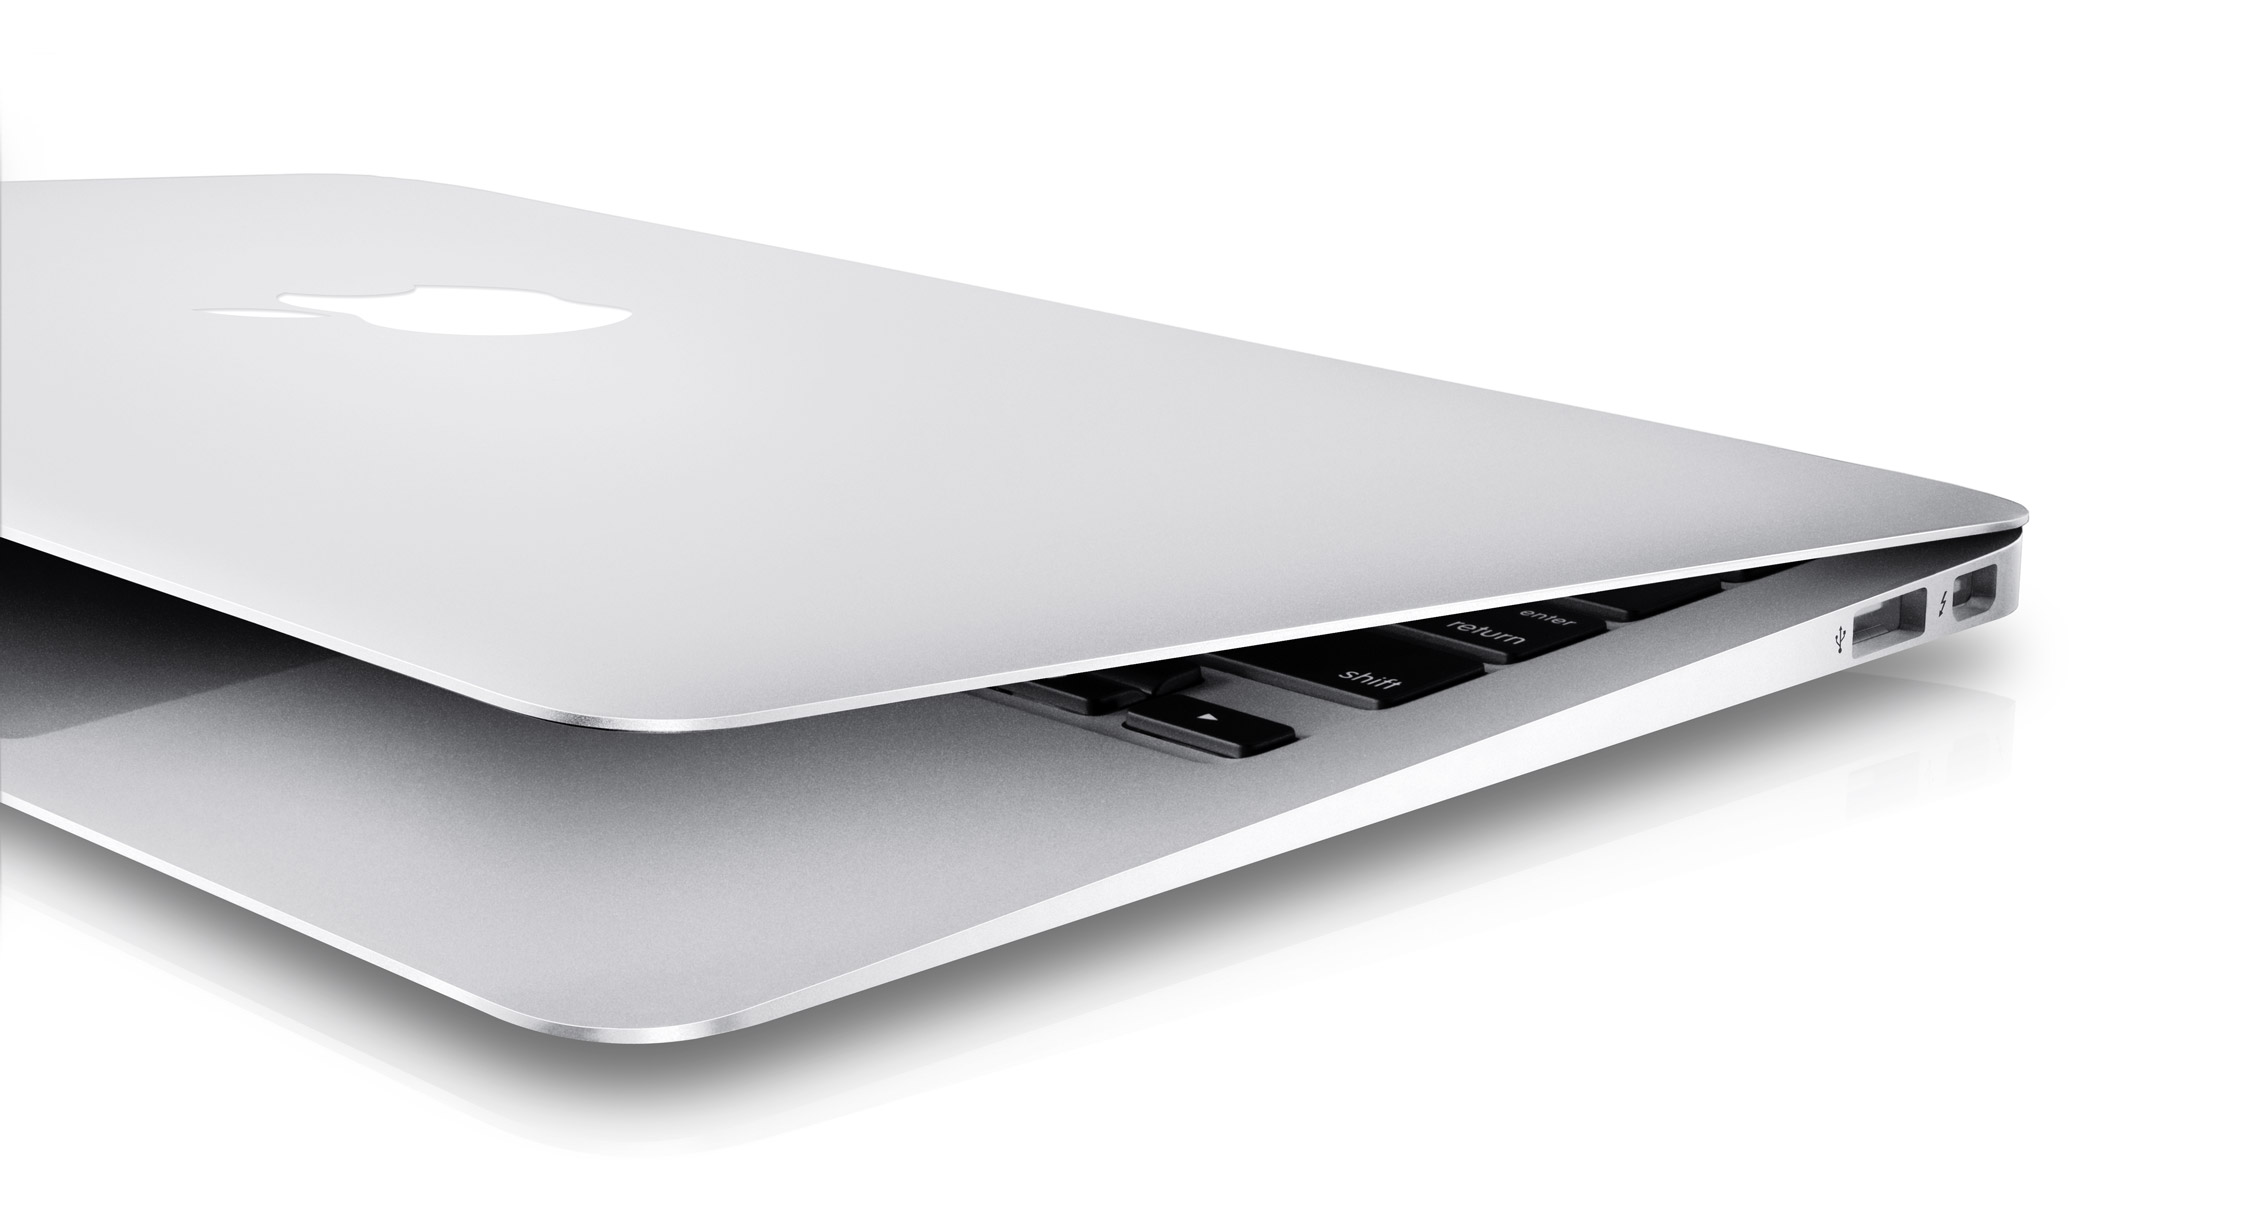 prix d un macbook air